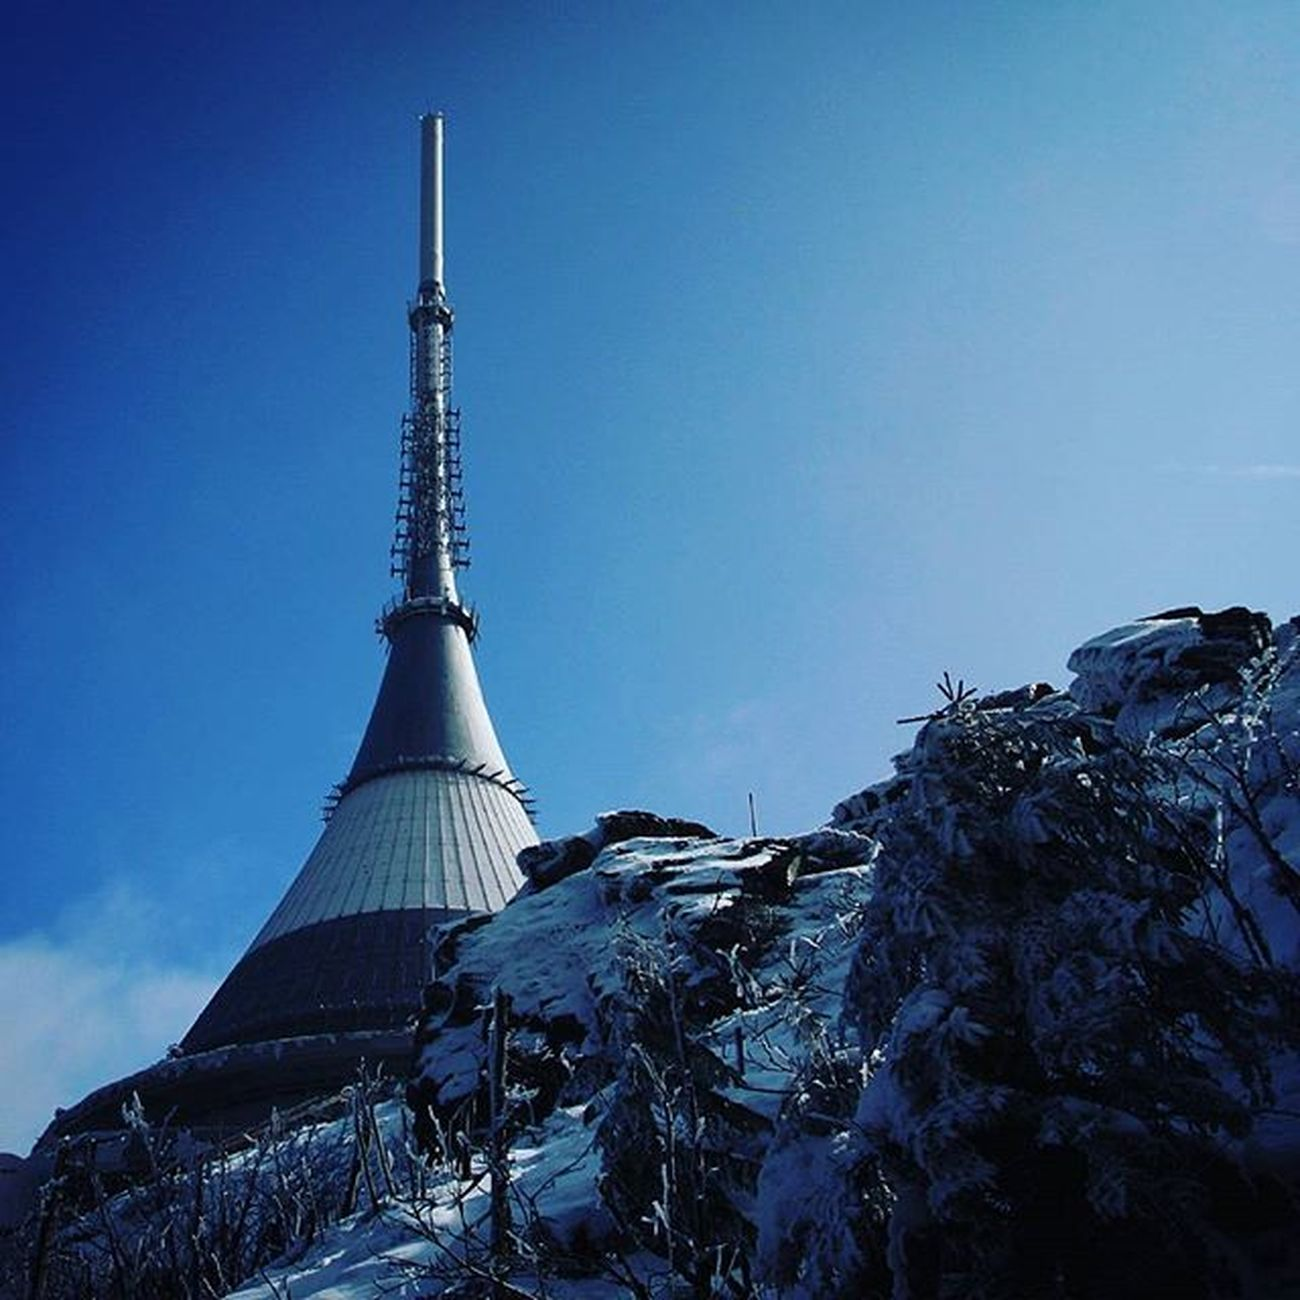 Czechrepublic Liberec Jested Tower Snow Ice Bluesky Winter